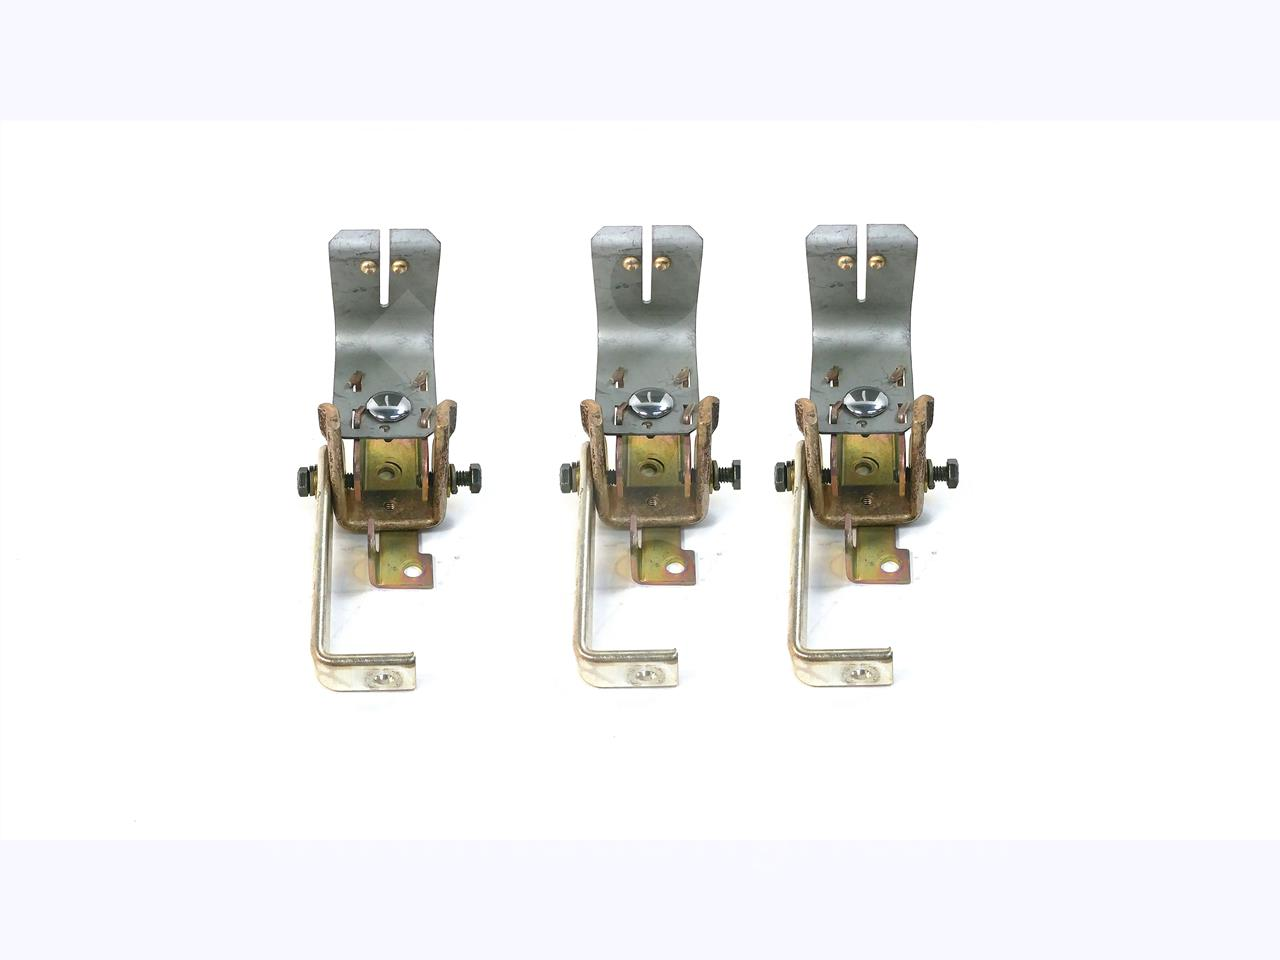 WH CONTACTOR FUSE CLIP ASSEMBLY KIT